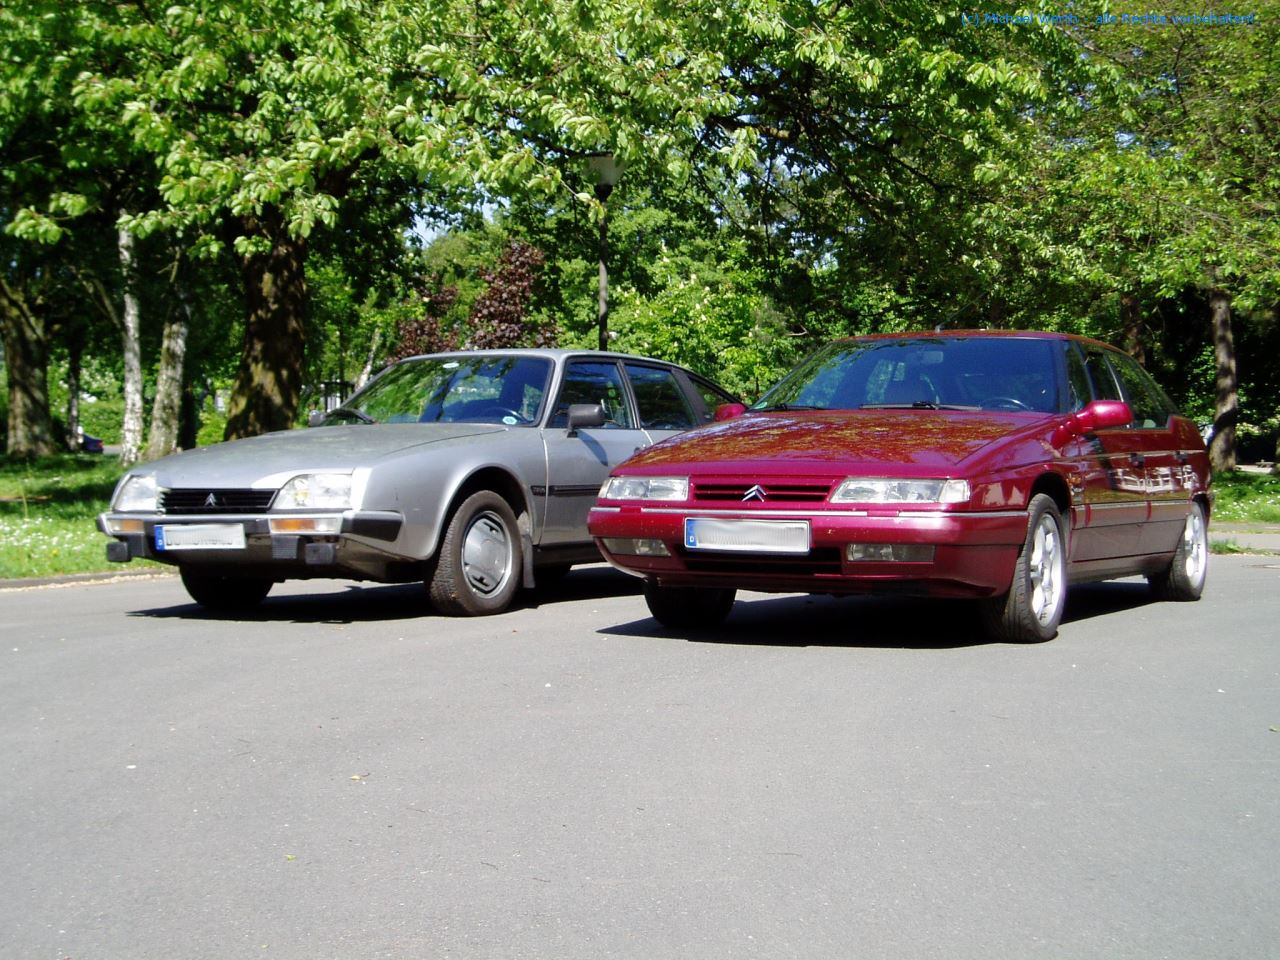 CX 25 GTi Turbo & XM 3.0 V6.24